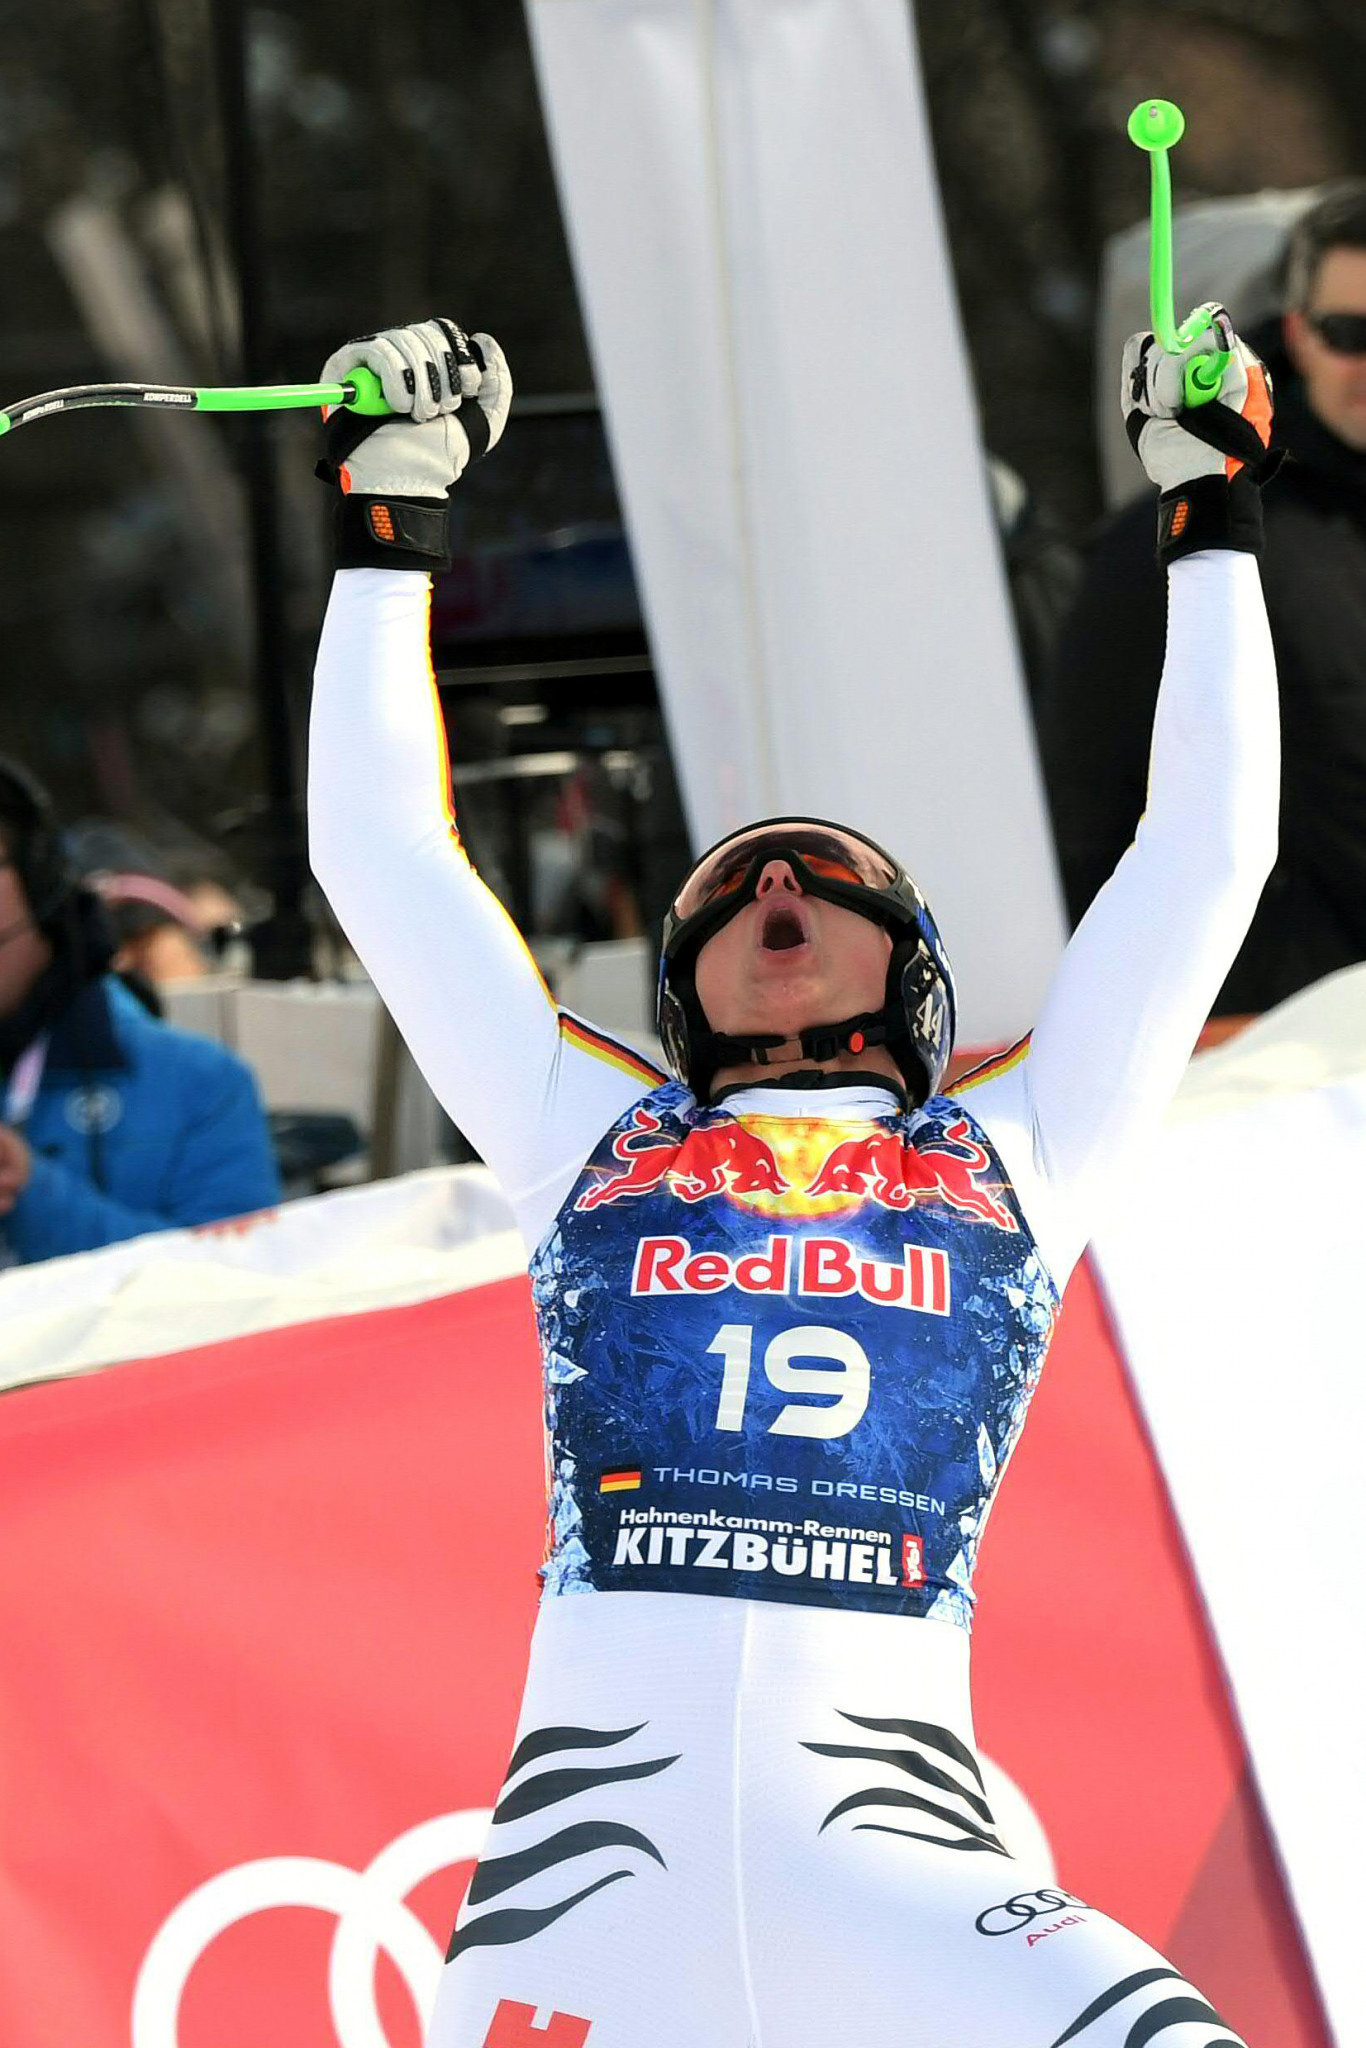 Germany's Thomas Dreßen claimed a shock downhill win in Kitzbühel ©Getty Images